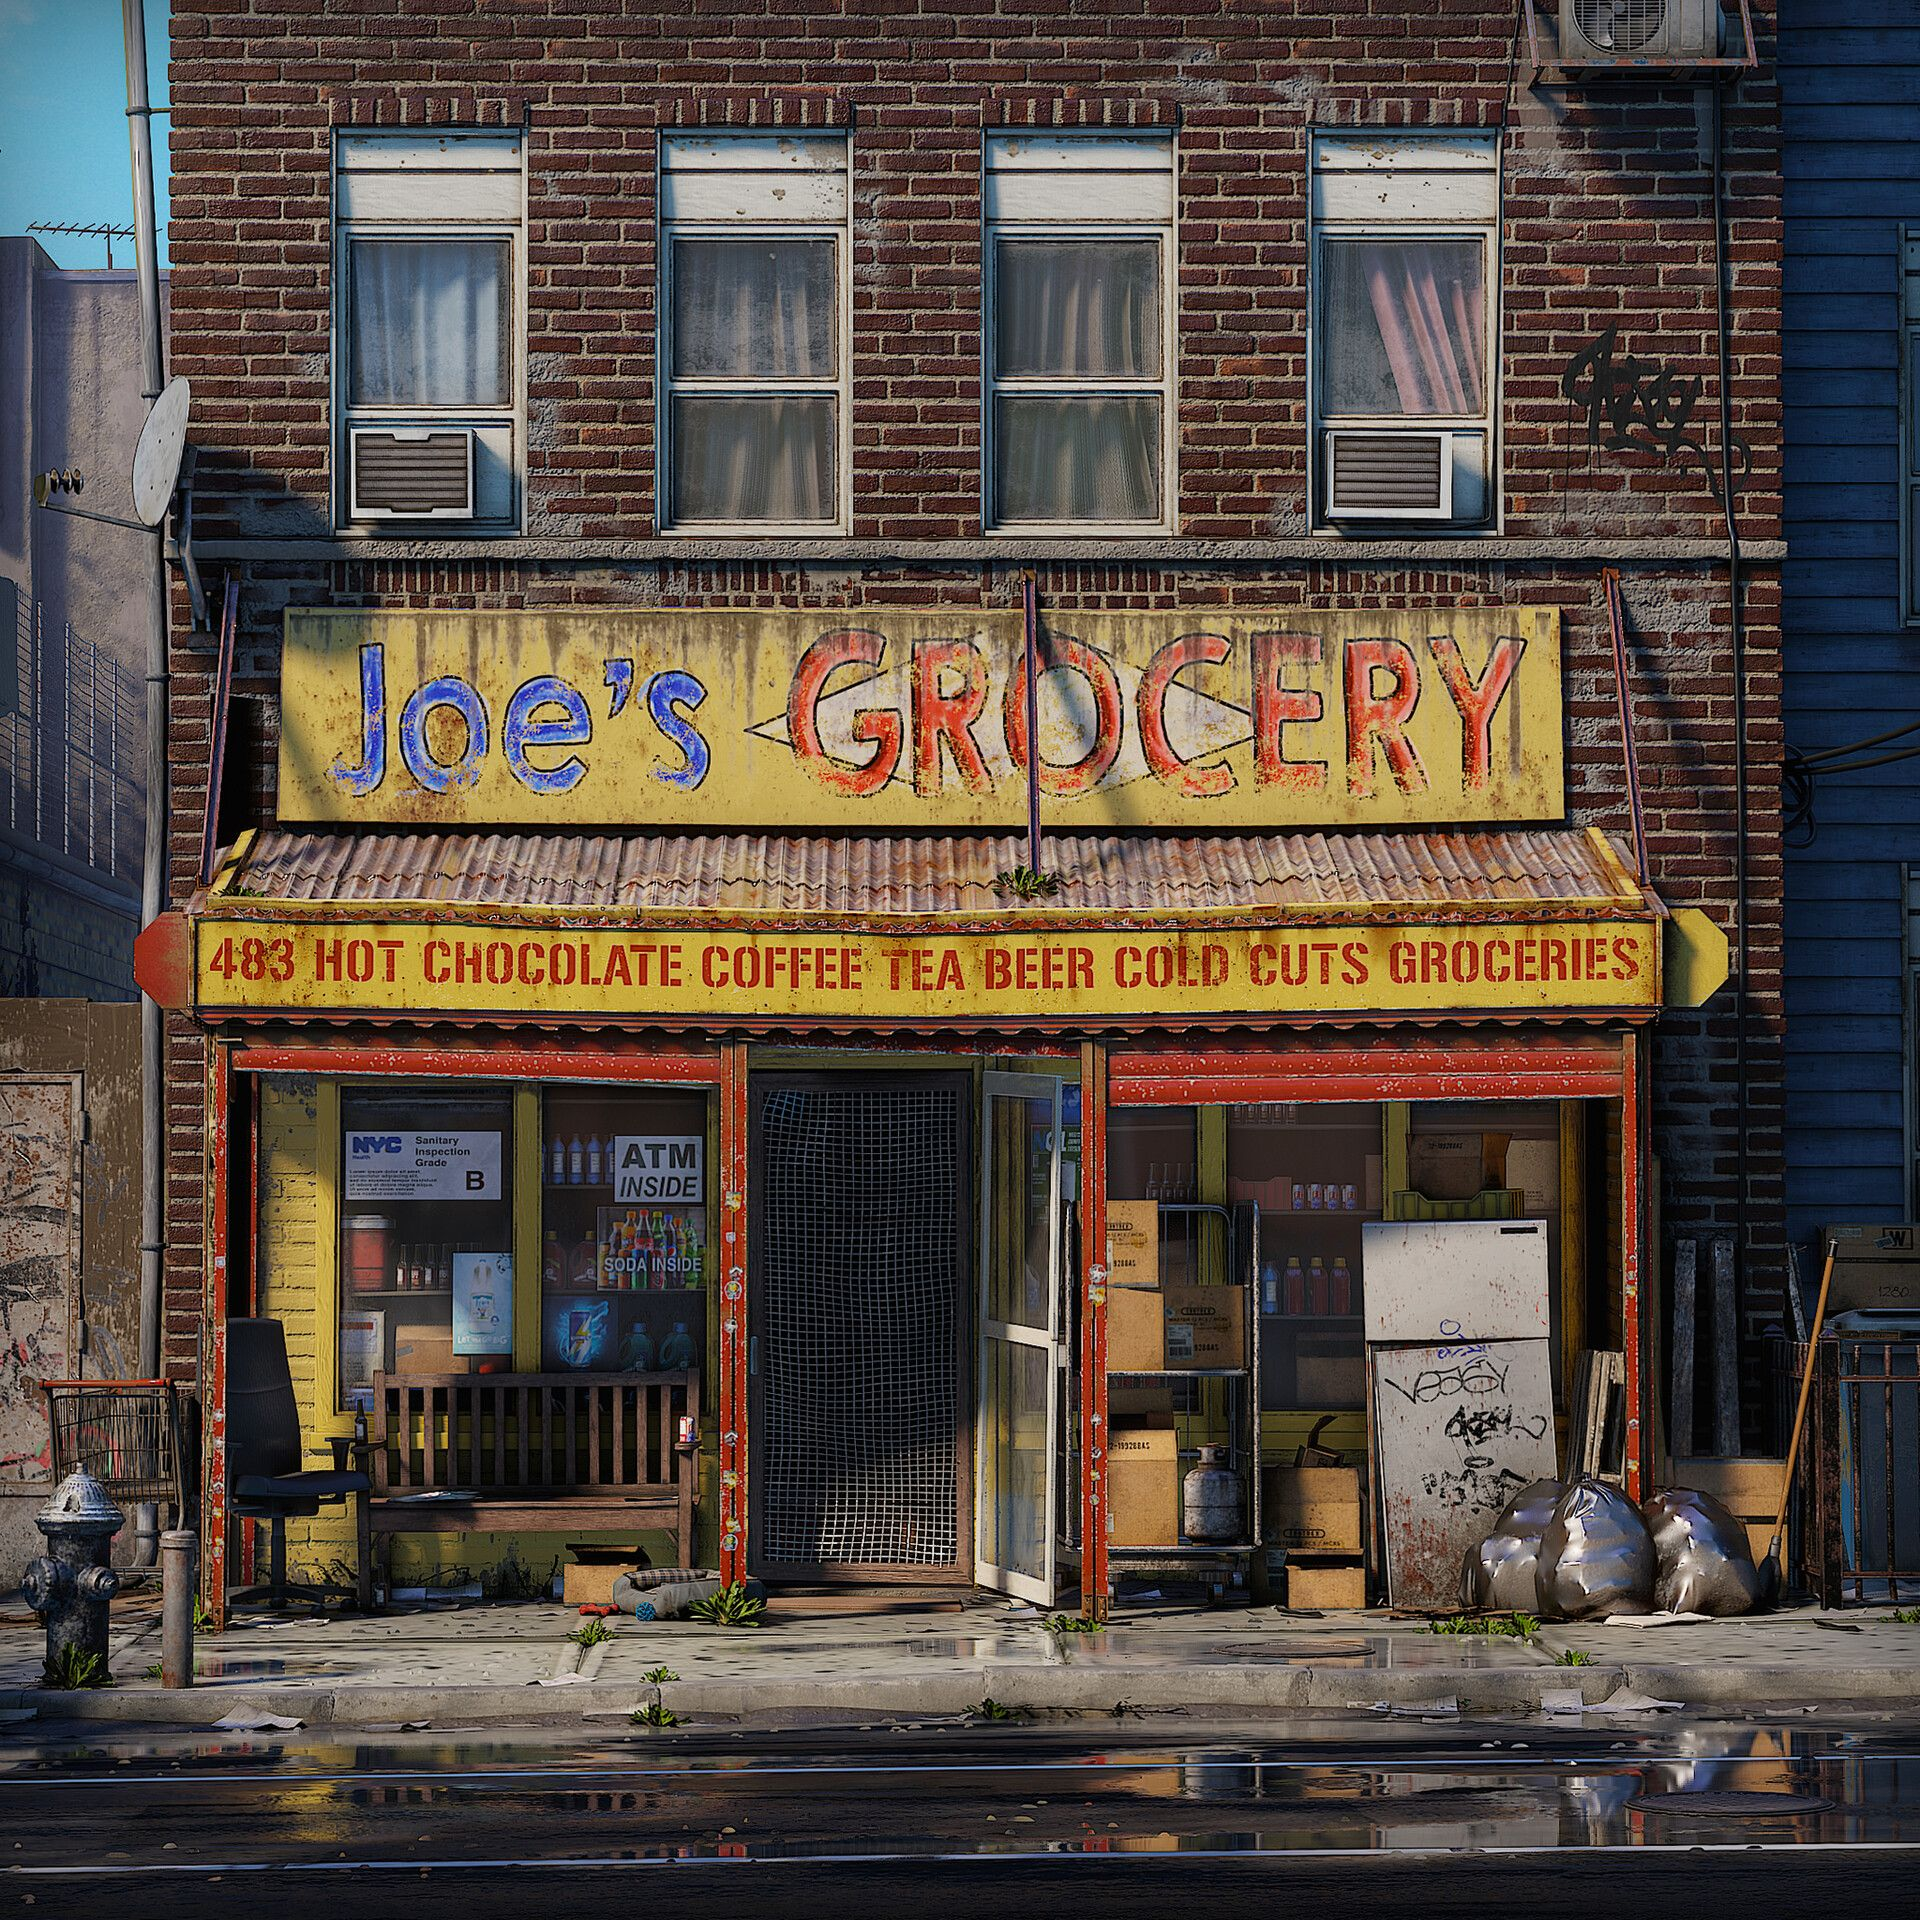 Brooklyn Grocery Store By Maarten Hofafter I Came Back From A Trip To New York I Felt Super Inspired By The Little Vintage Storefront City Architecture Grocery